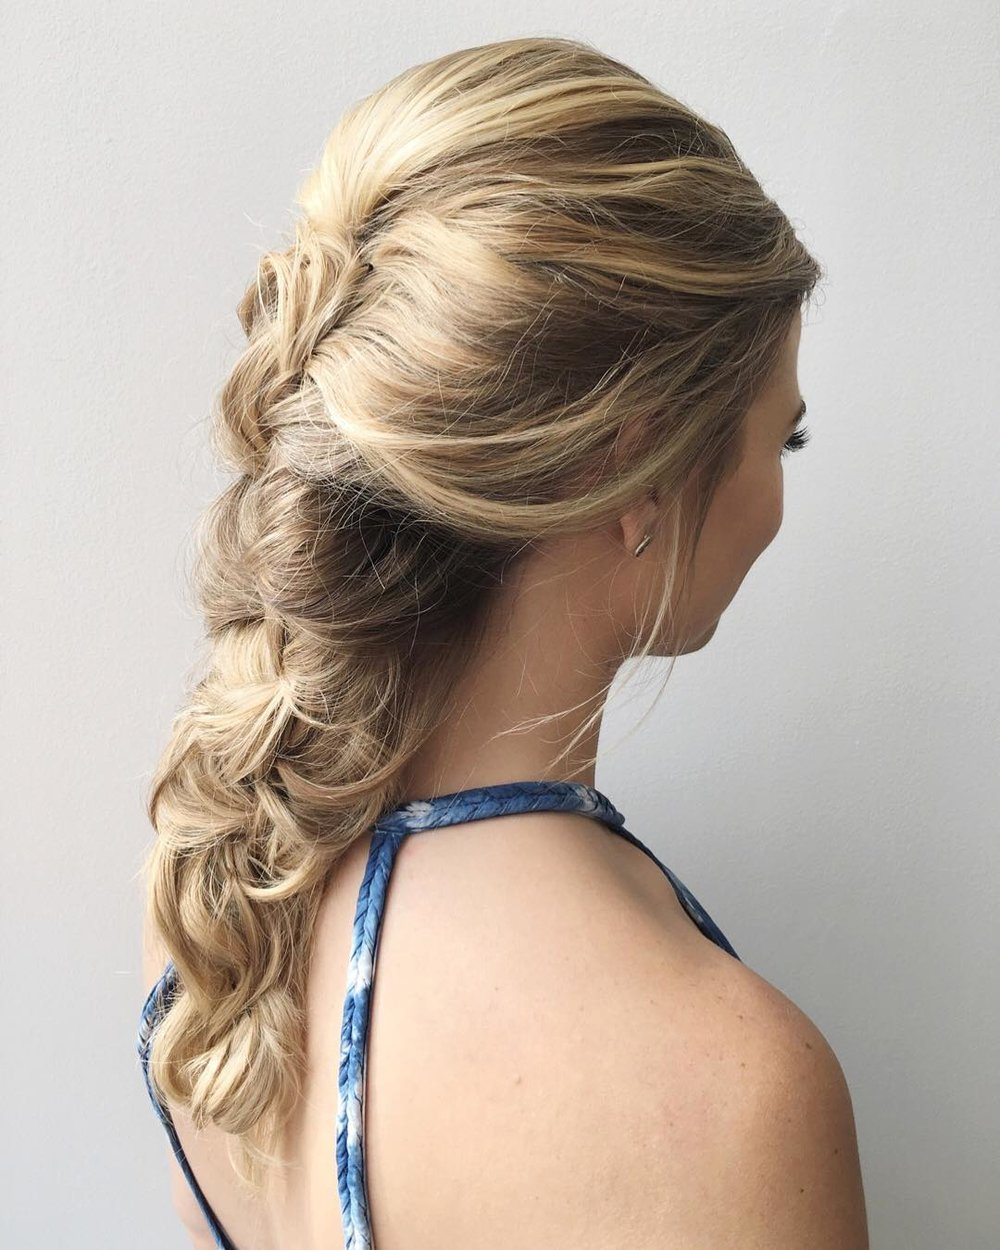 wedding-hair-inspiration-braid